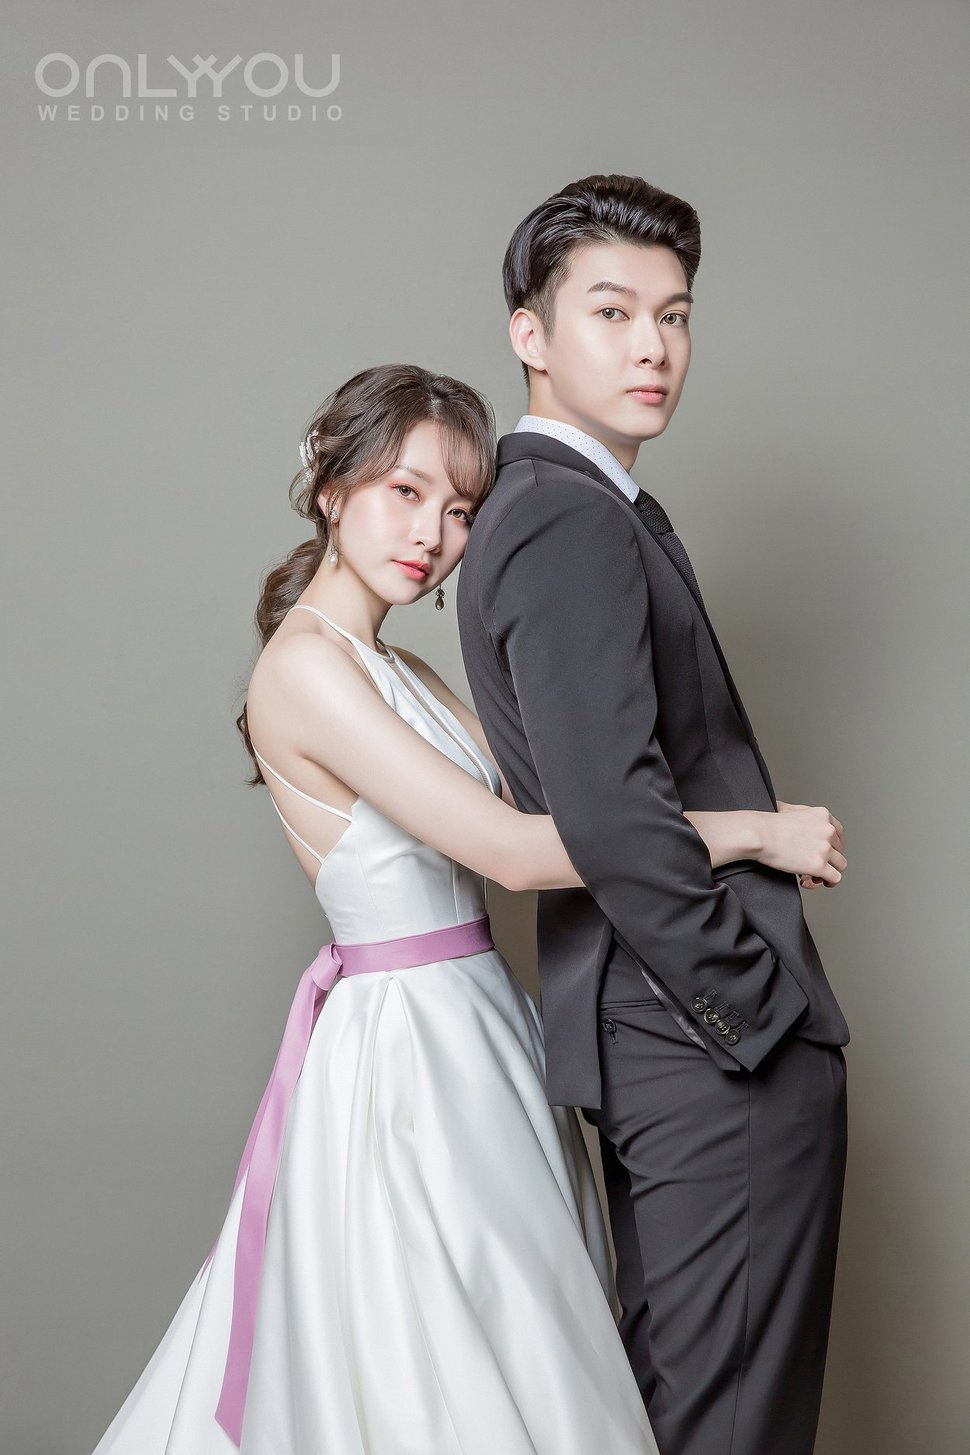 67881325_2310588432330123_3113971505734615040_o - ONLY YOU 唯你婚紗攝影《結婚吧》